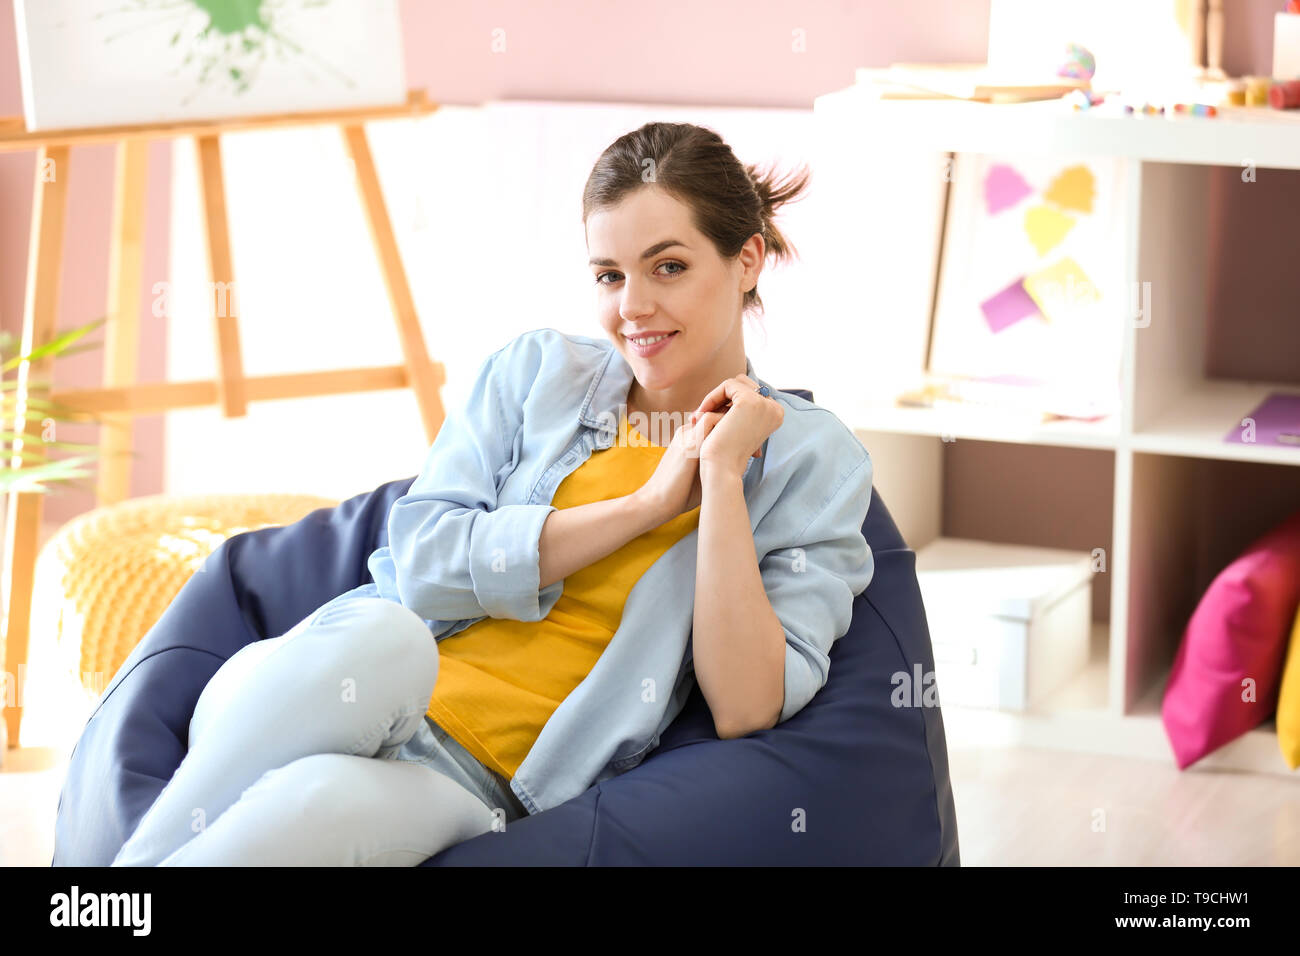 Young female painter sitting on beanbag chair in studio - Stock Image